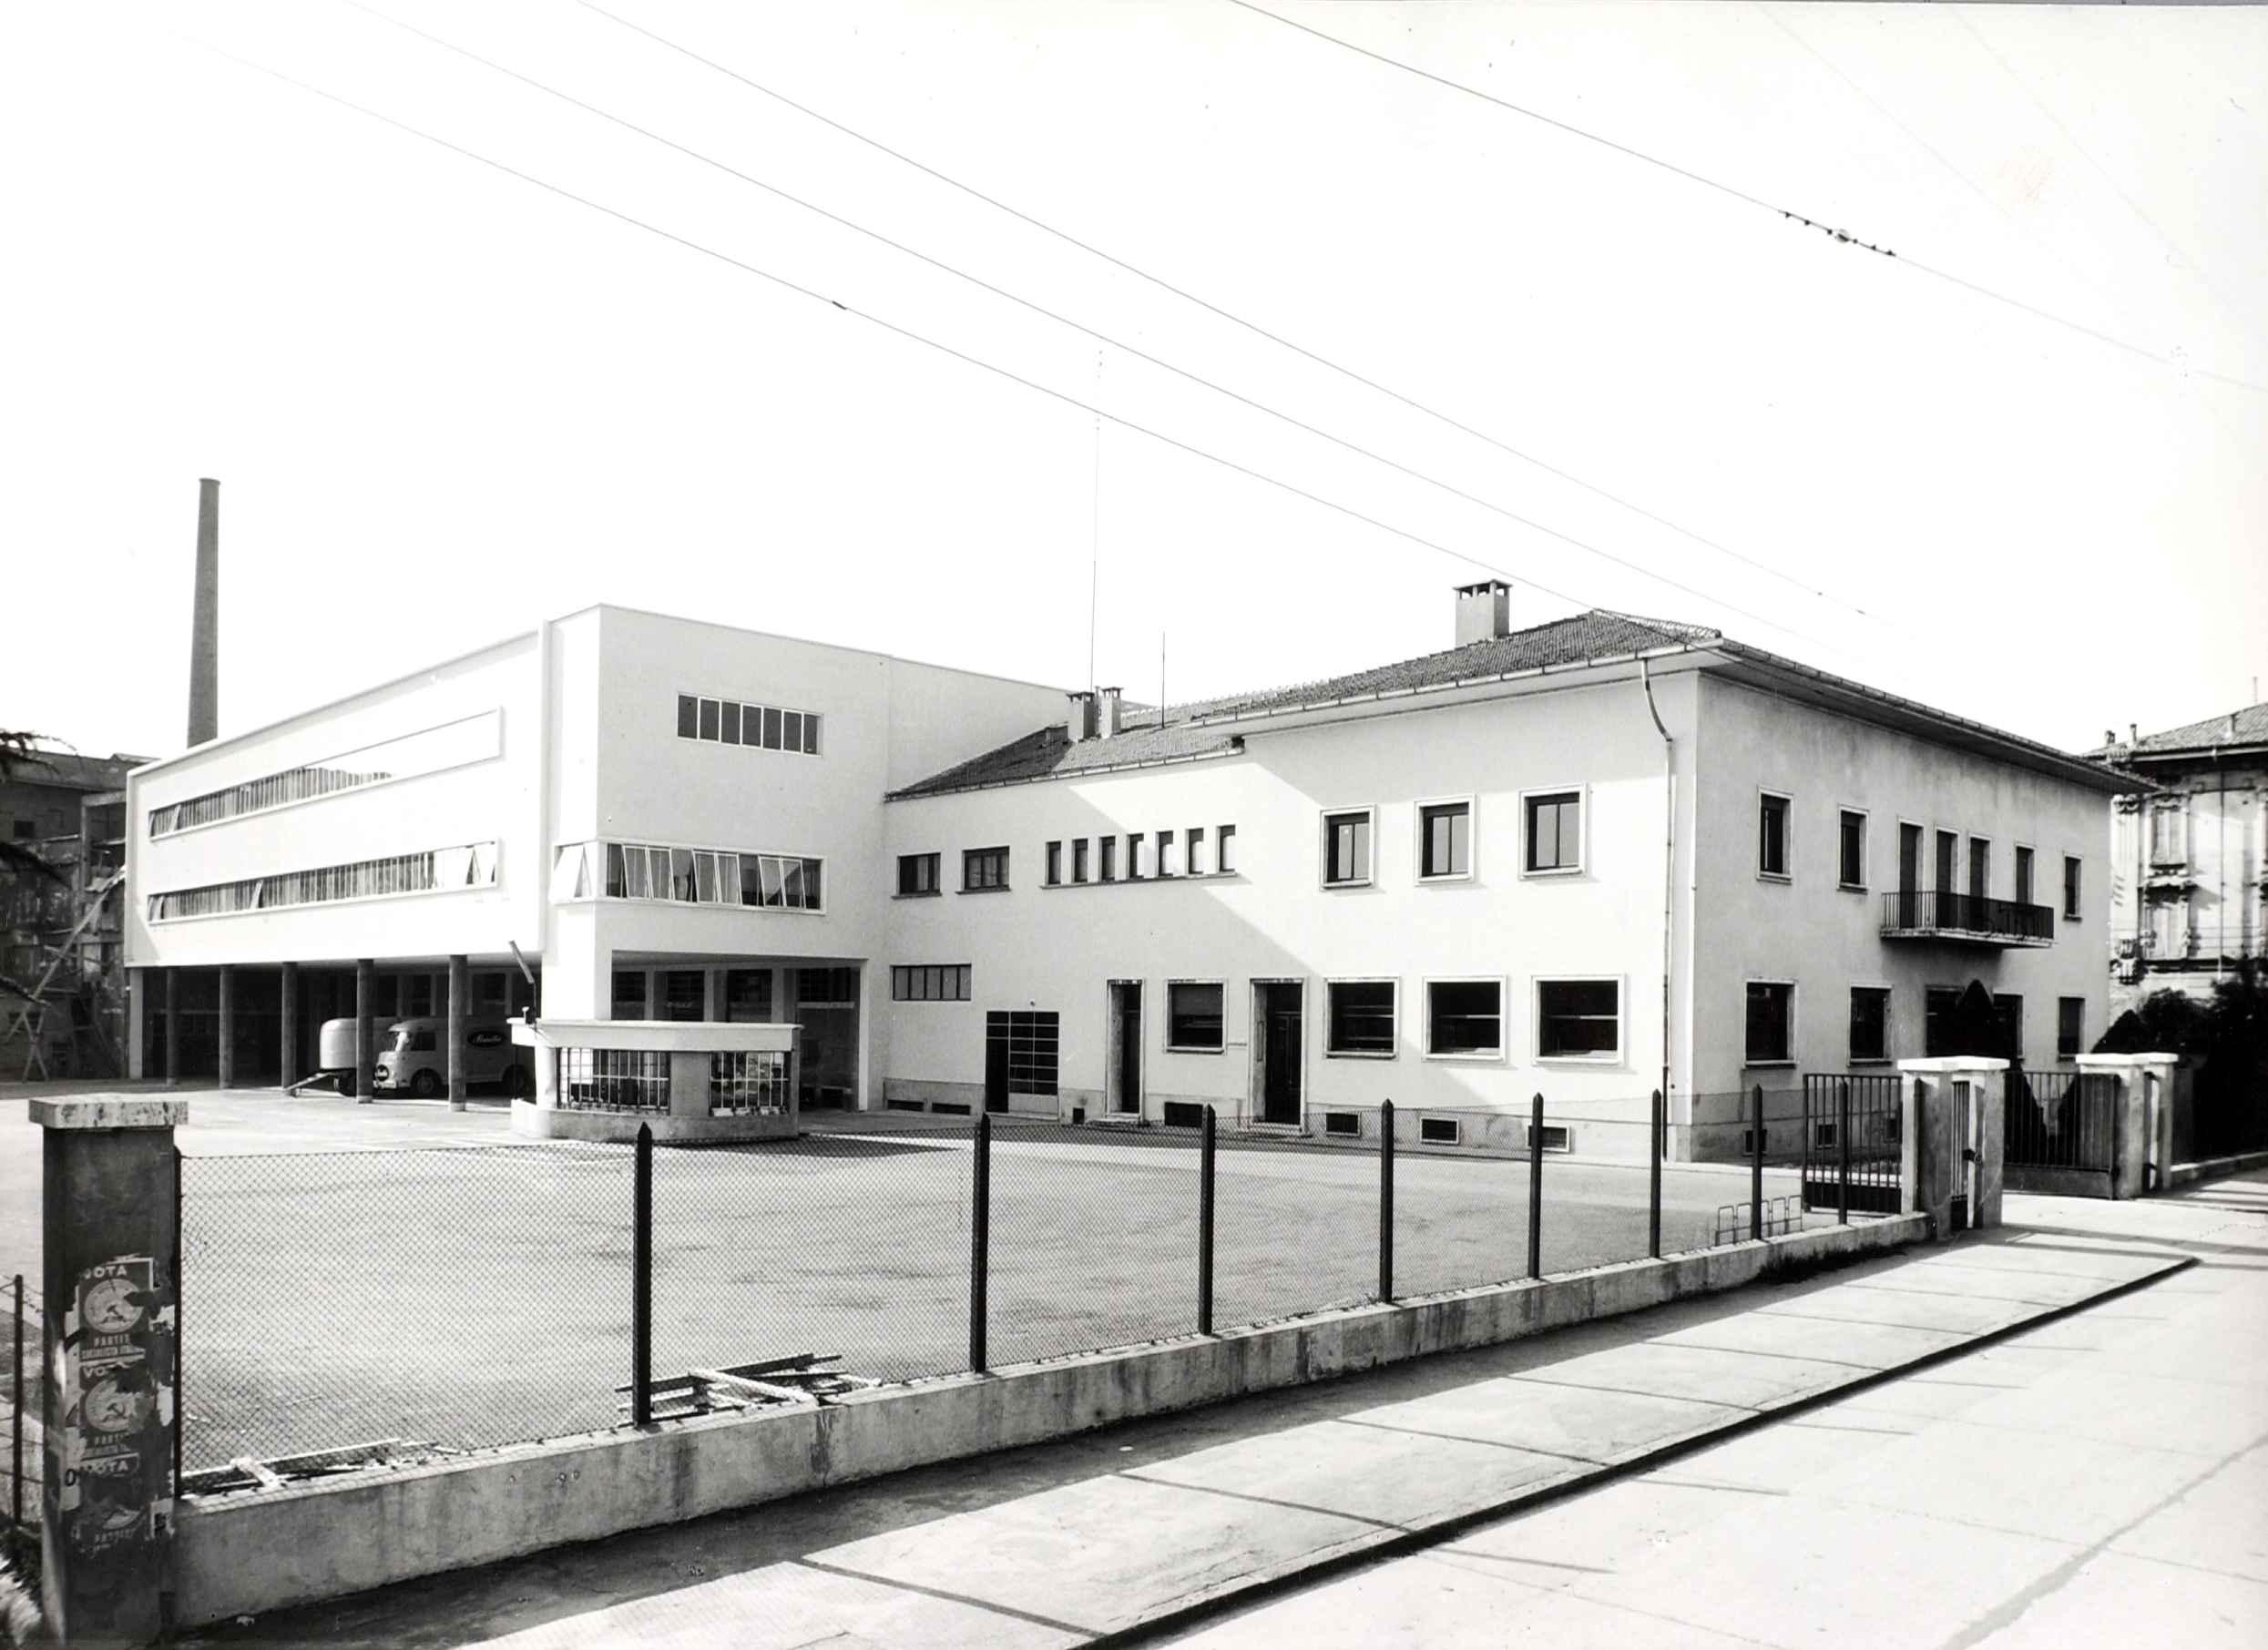 The building used for the offices after the transformations made by the engineer Ugo Vitali Mazza in 1957 to the Mill [ASB, Aa 391], first part of the restoration of the plant during the post-war period.